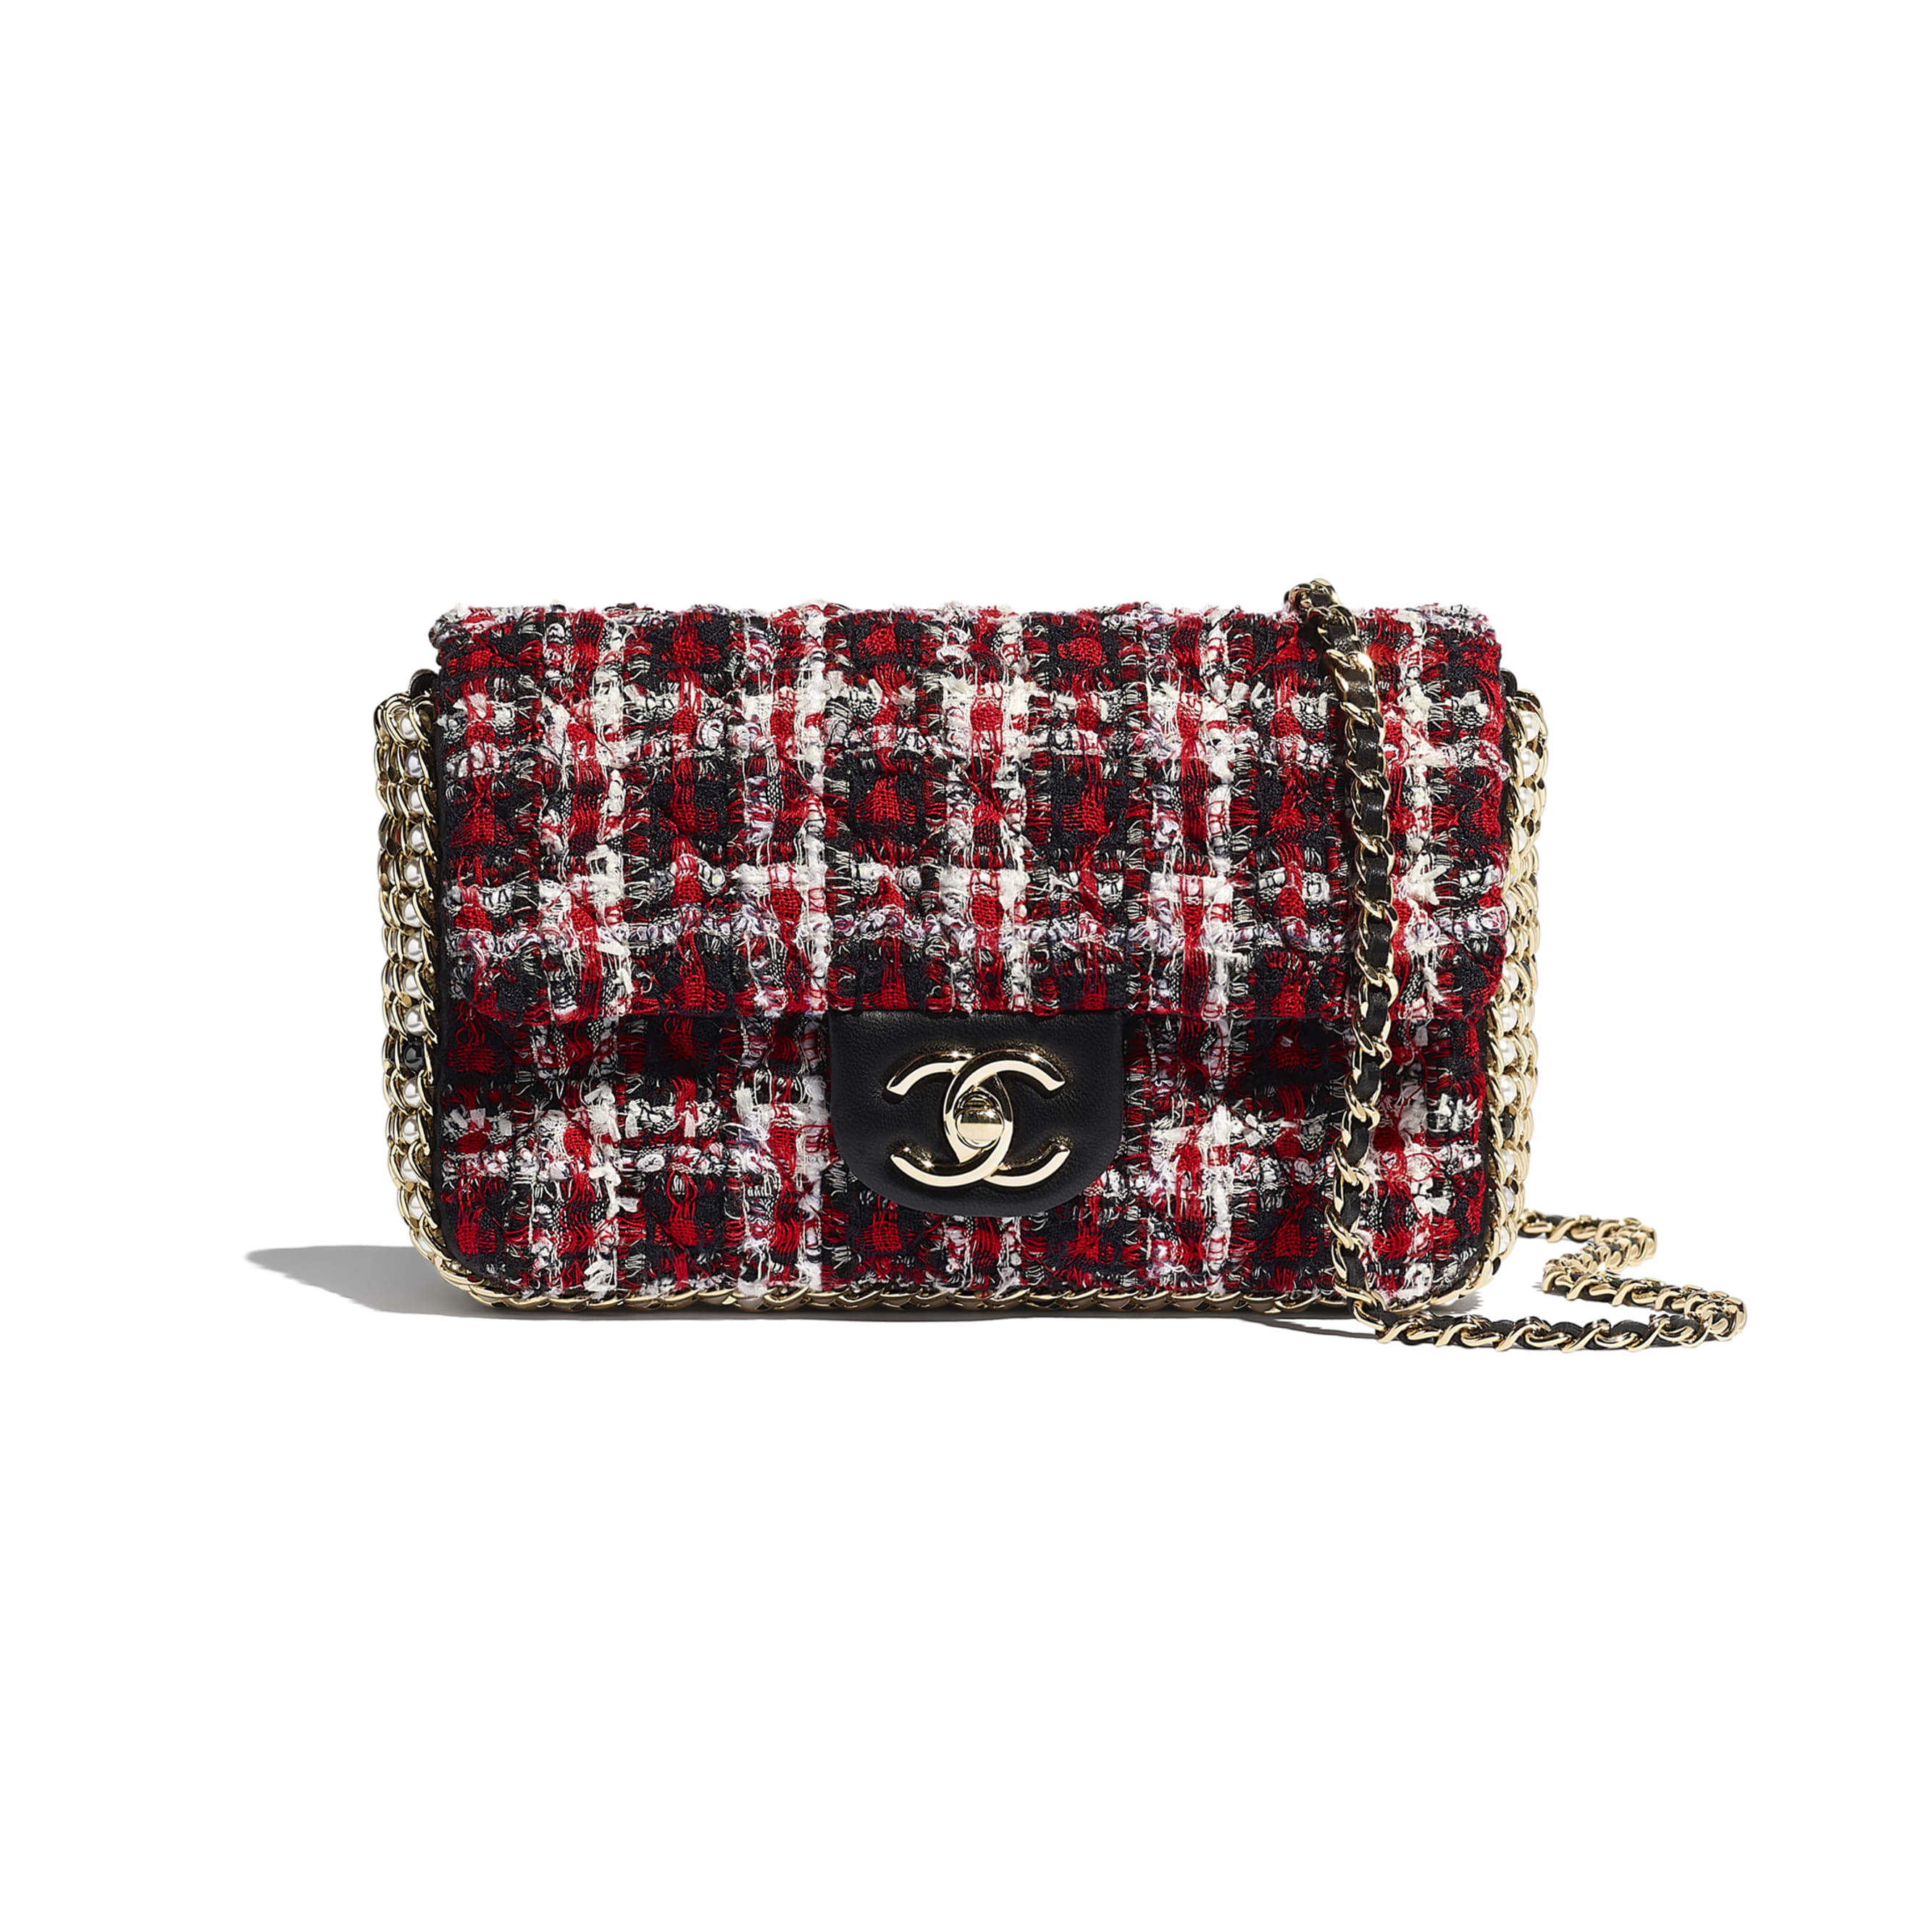 Flap Bag - Red, Black & White - Tweed, Imitation Pearls & Gold-Tone Metal - Default view - see standard sized version